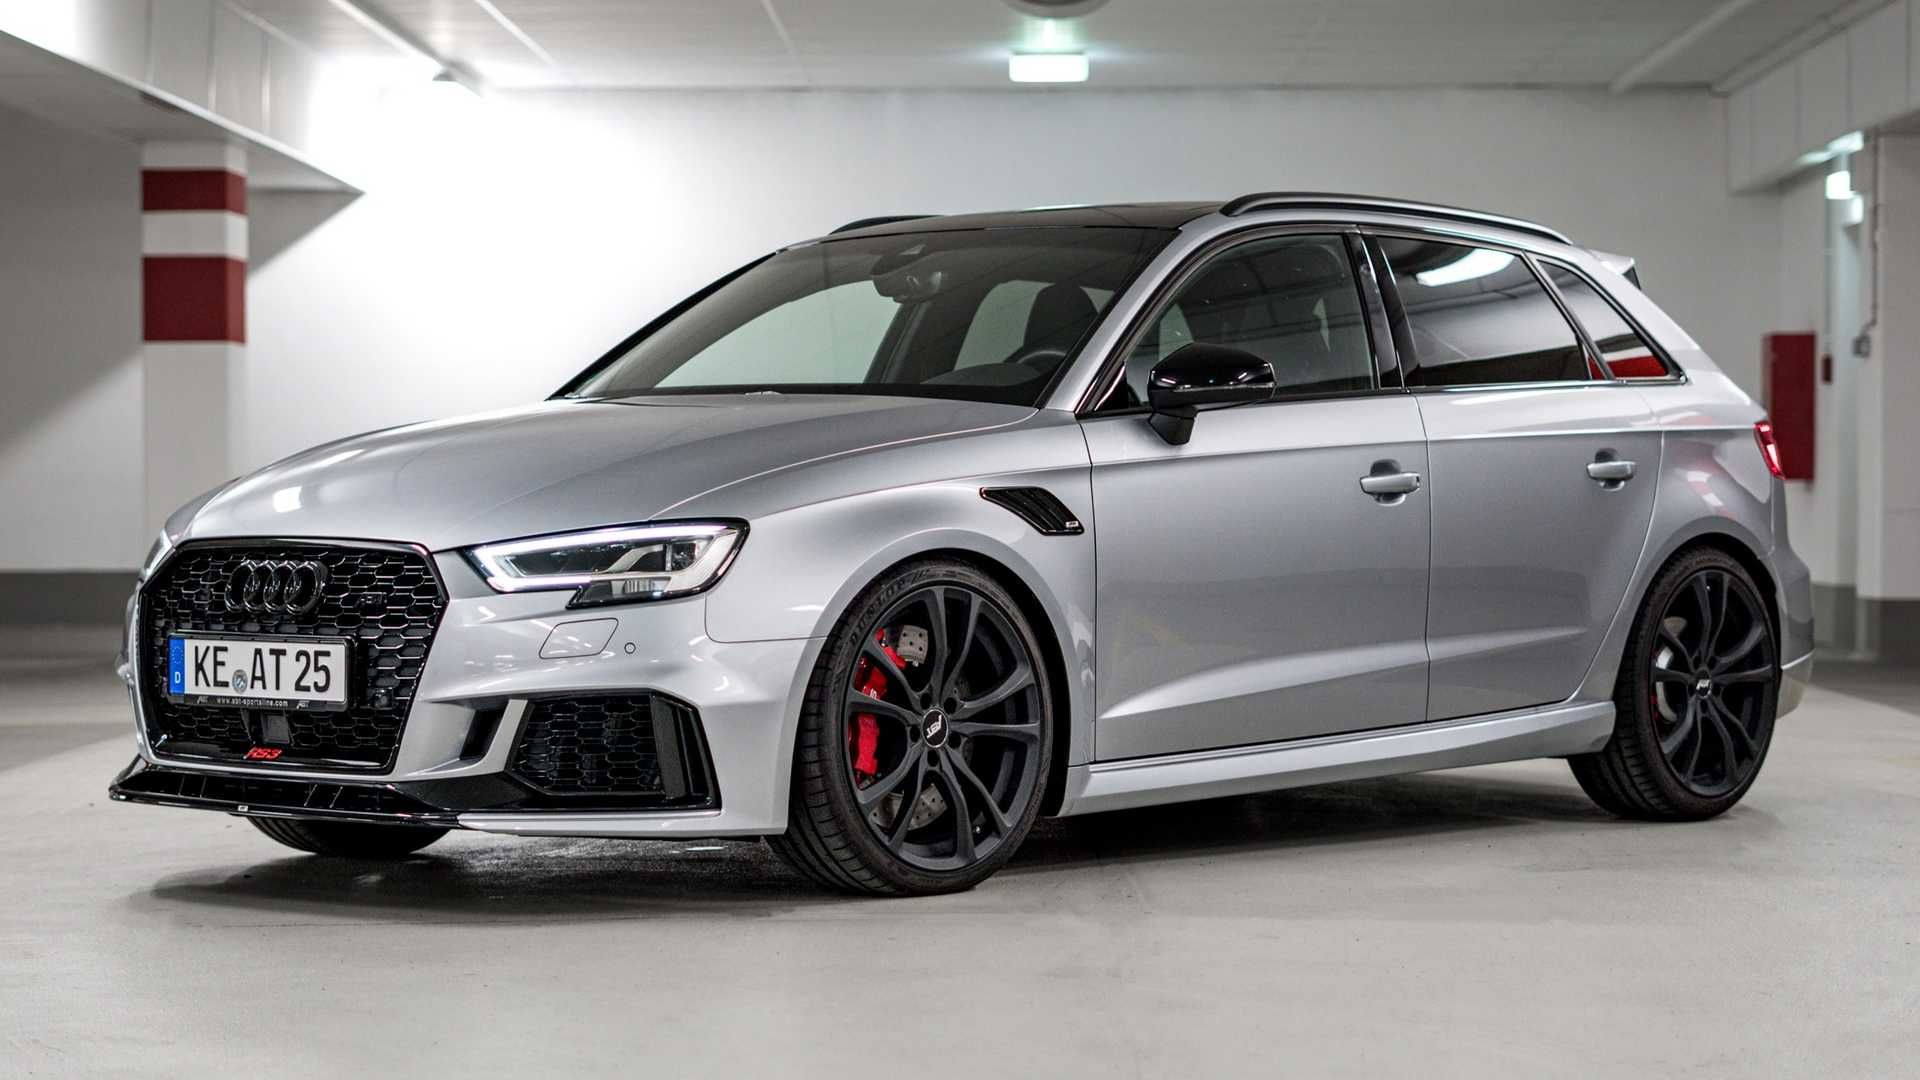 Rs3 Christmas 2020 ABT Cranks Audi RS3 To 470 HP (350 kW) | Audi rs3, Audi sportback